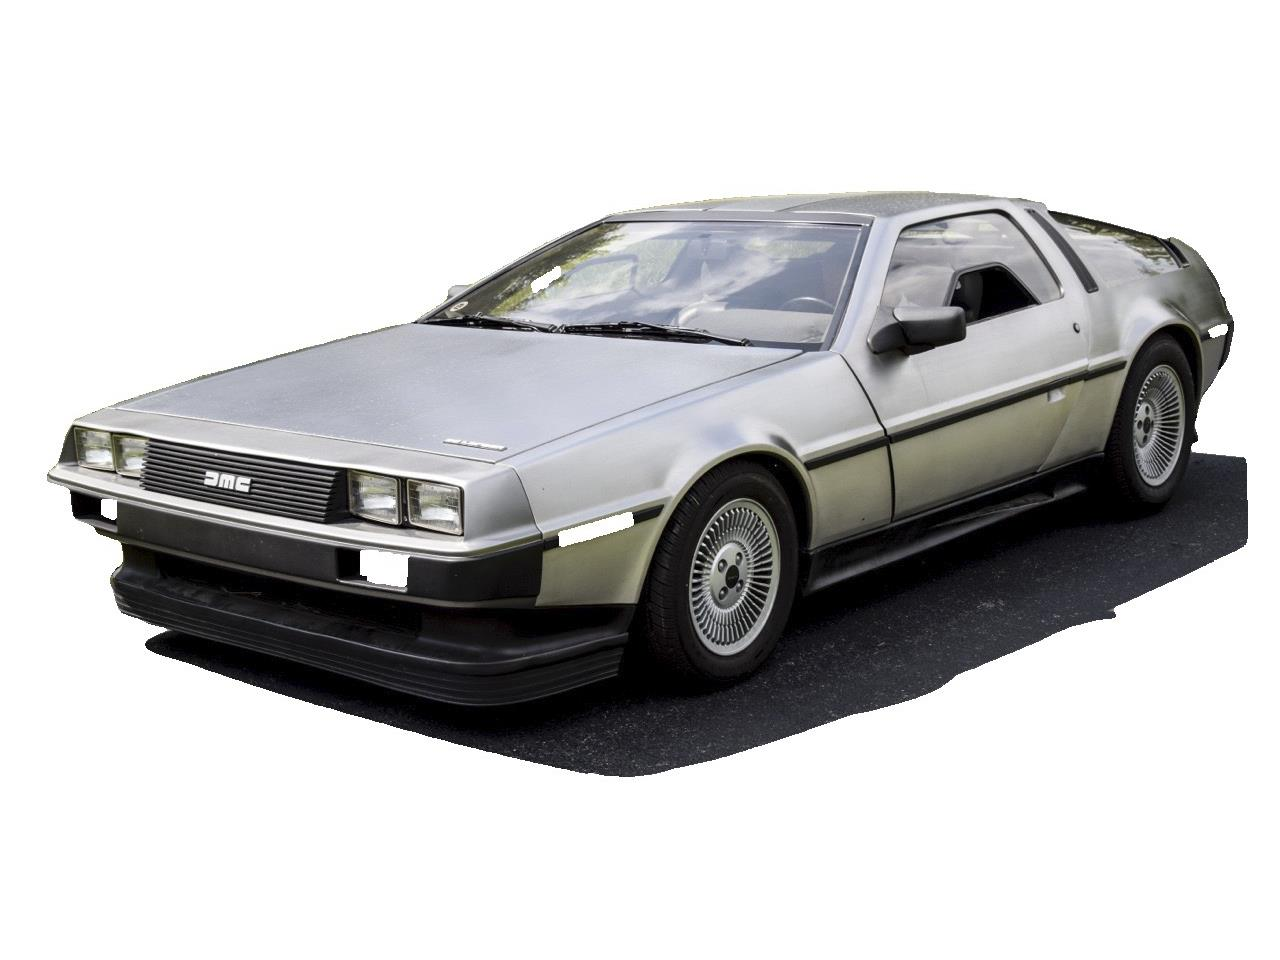 Large Picture of 1982 DeLorean DMC-12 located in Virginia - $32,500.00 Offered by a Private Seller - PEC7